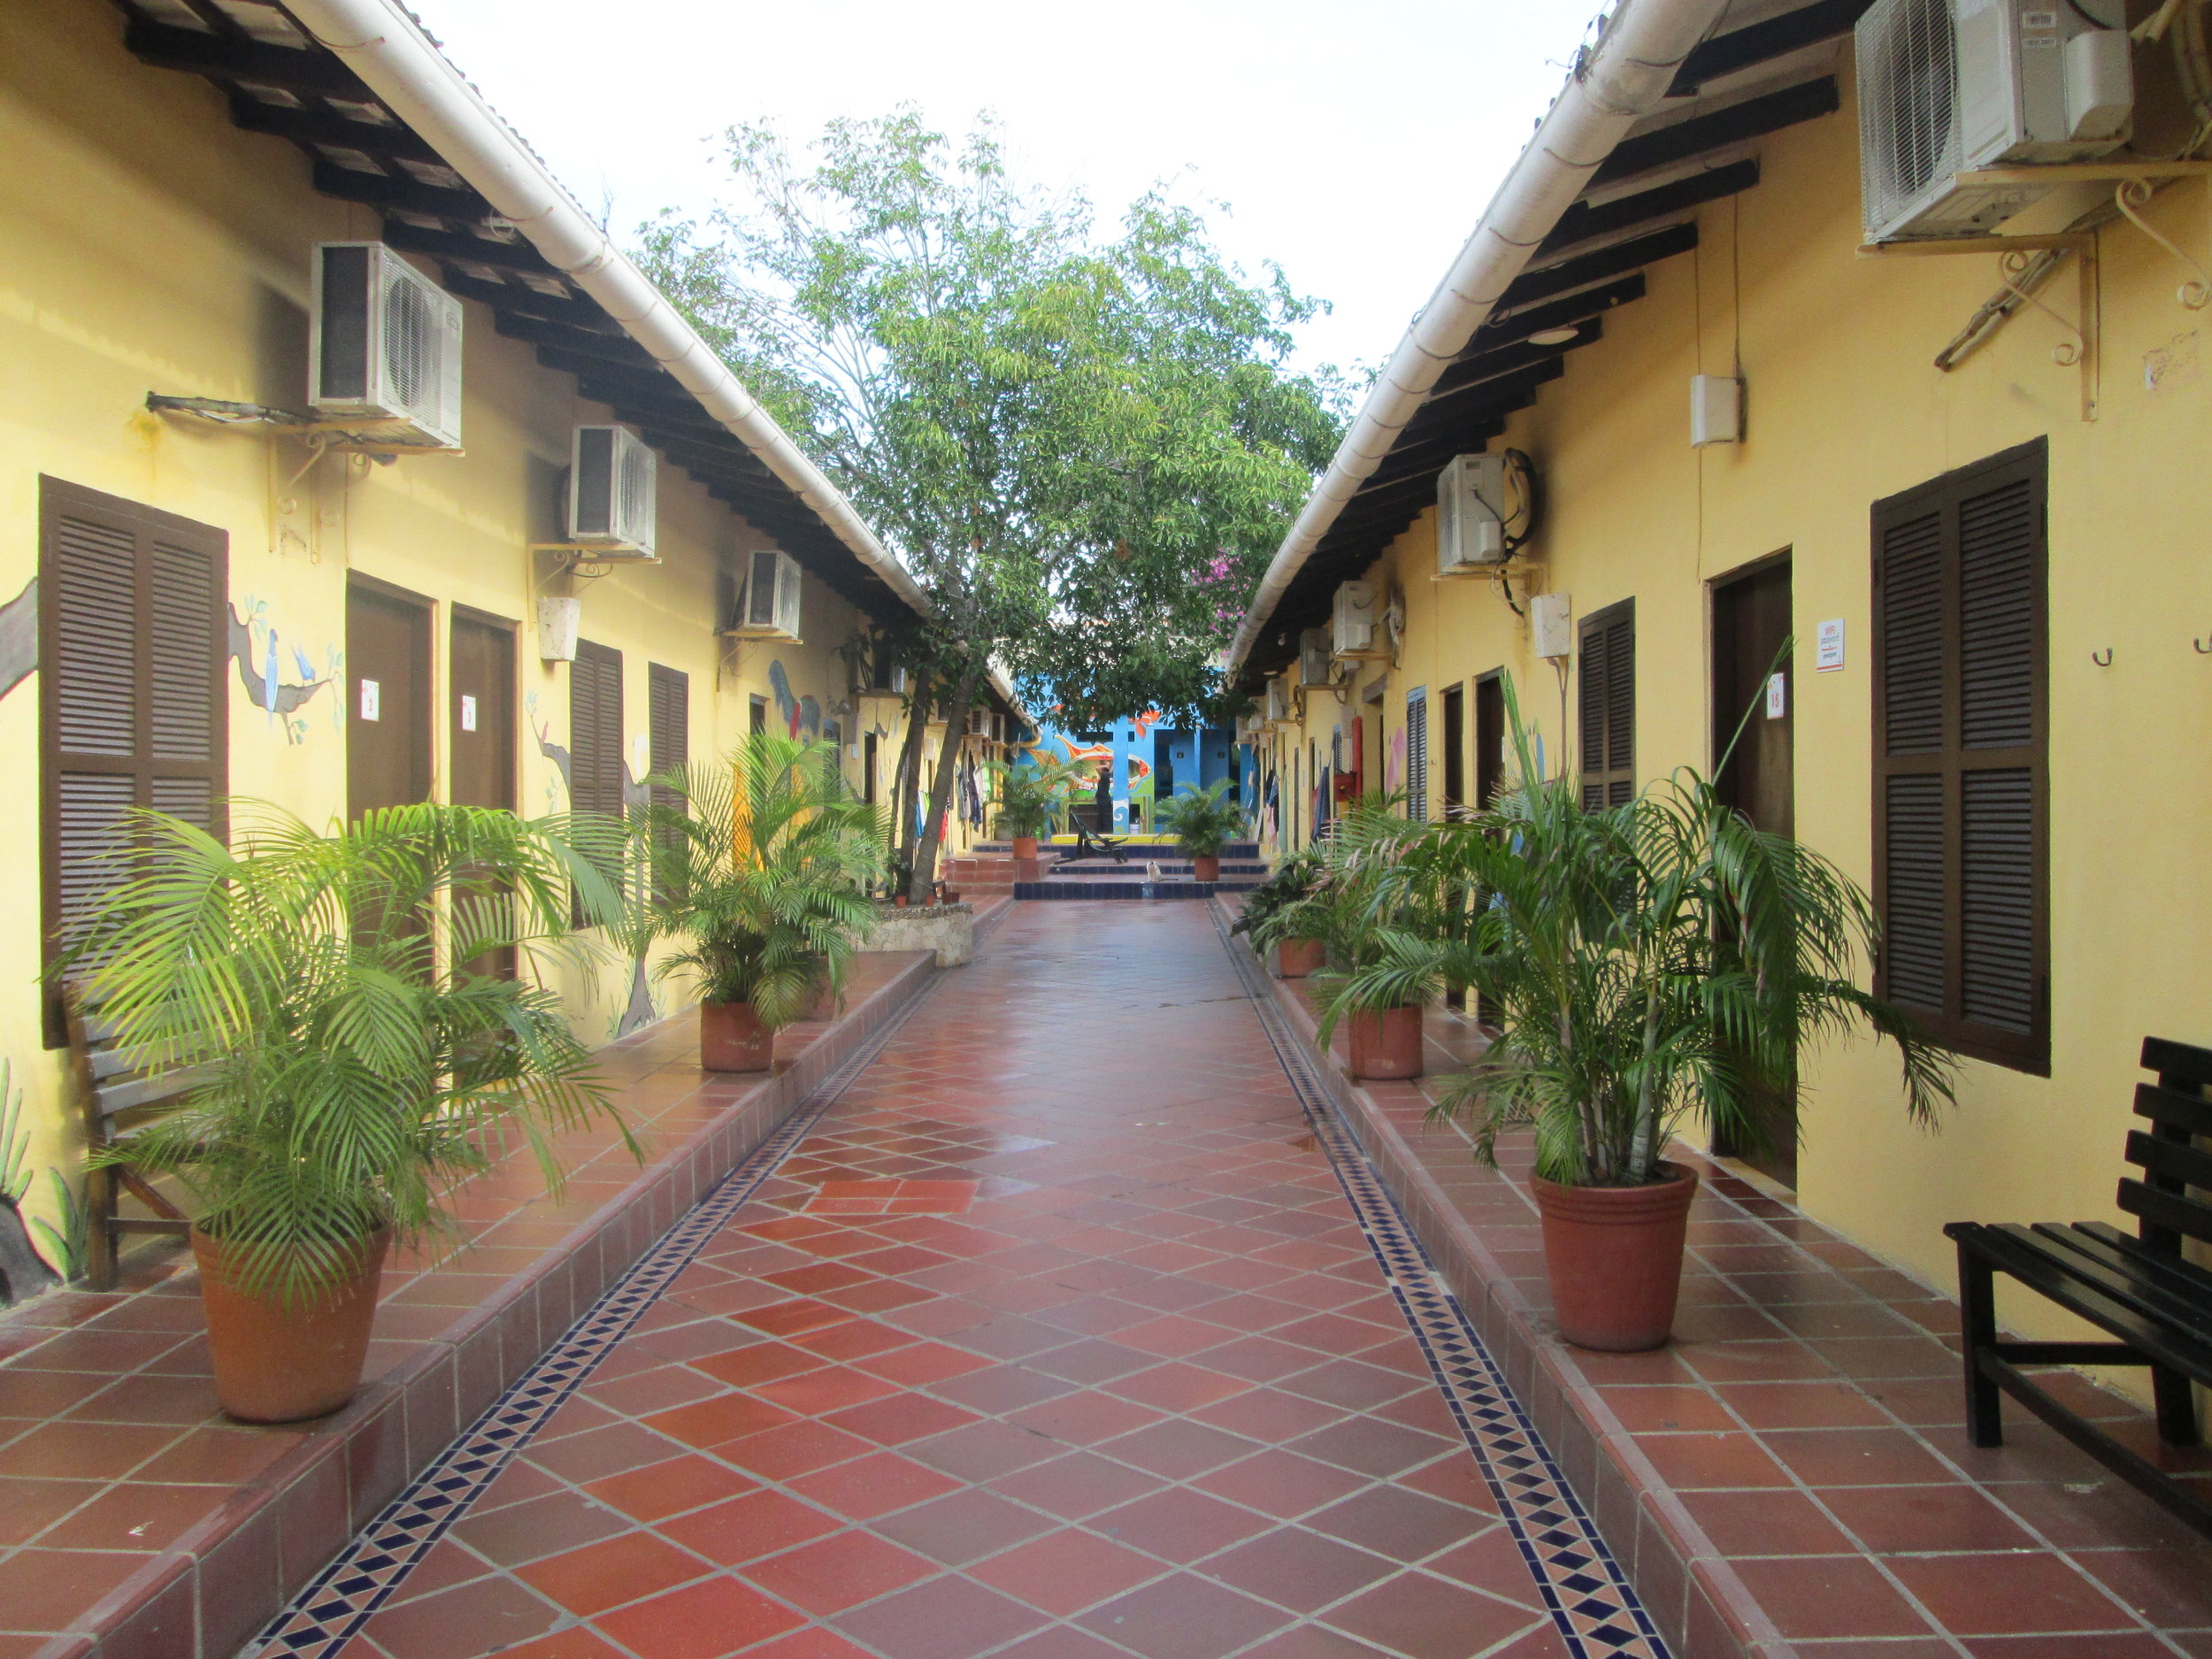 Inside El Viajero Hostel in Cartagena. Rooms line the corridor and culminate in communal bathrooms at the end.